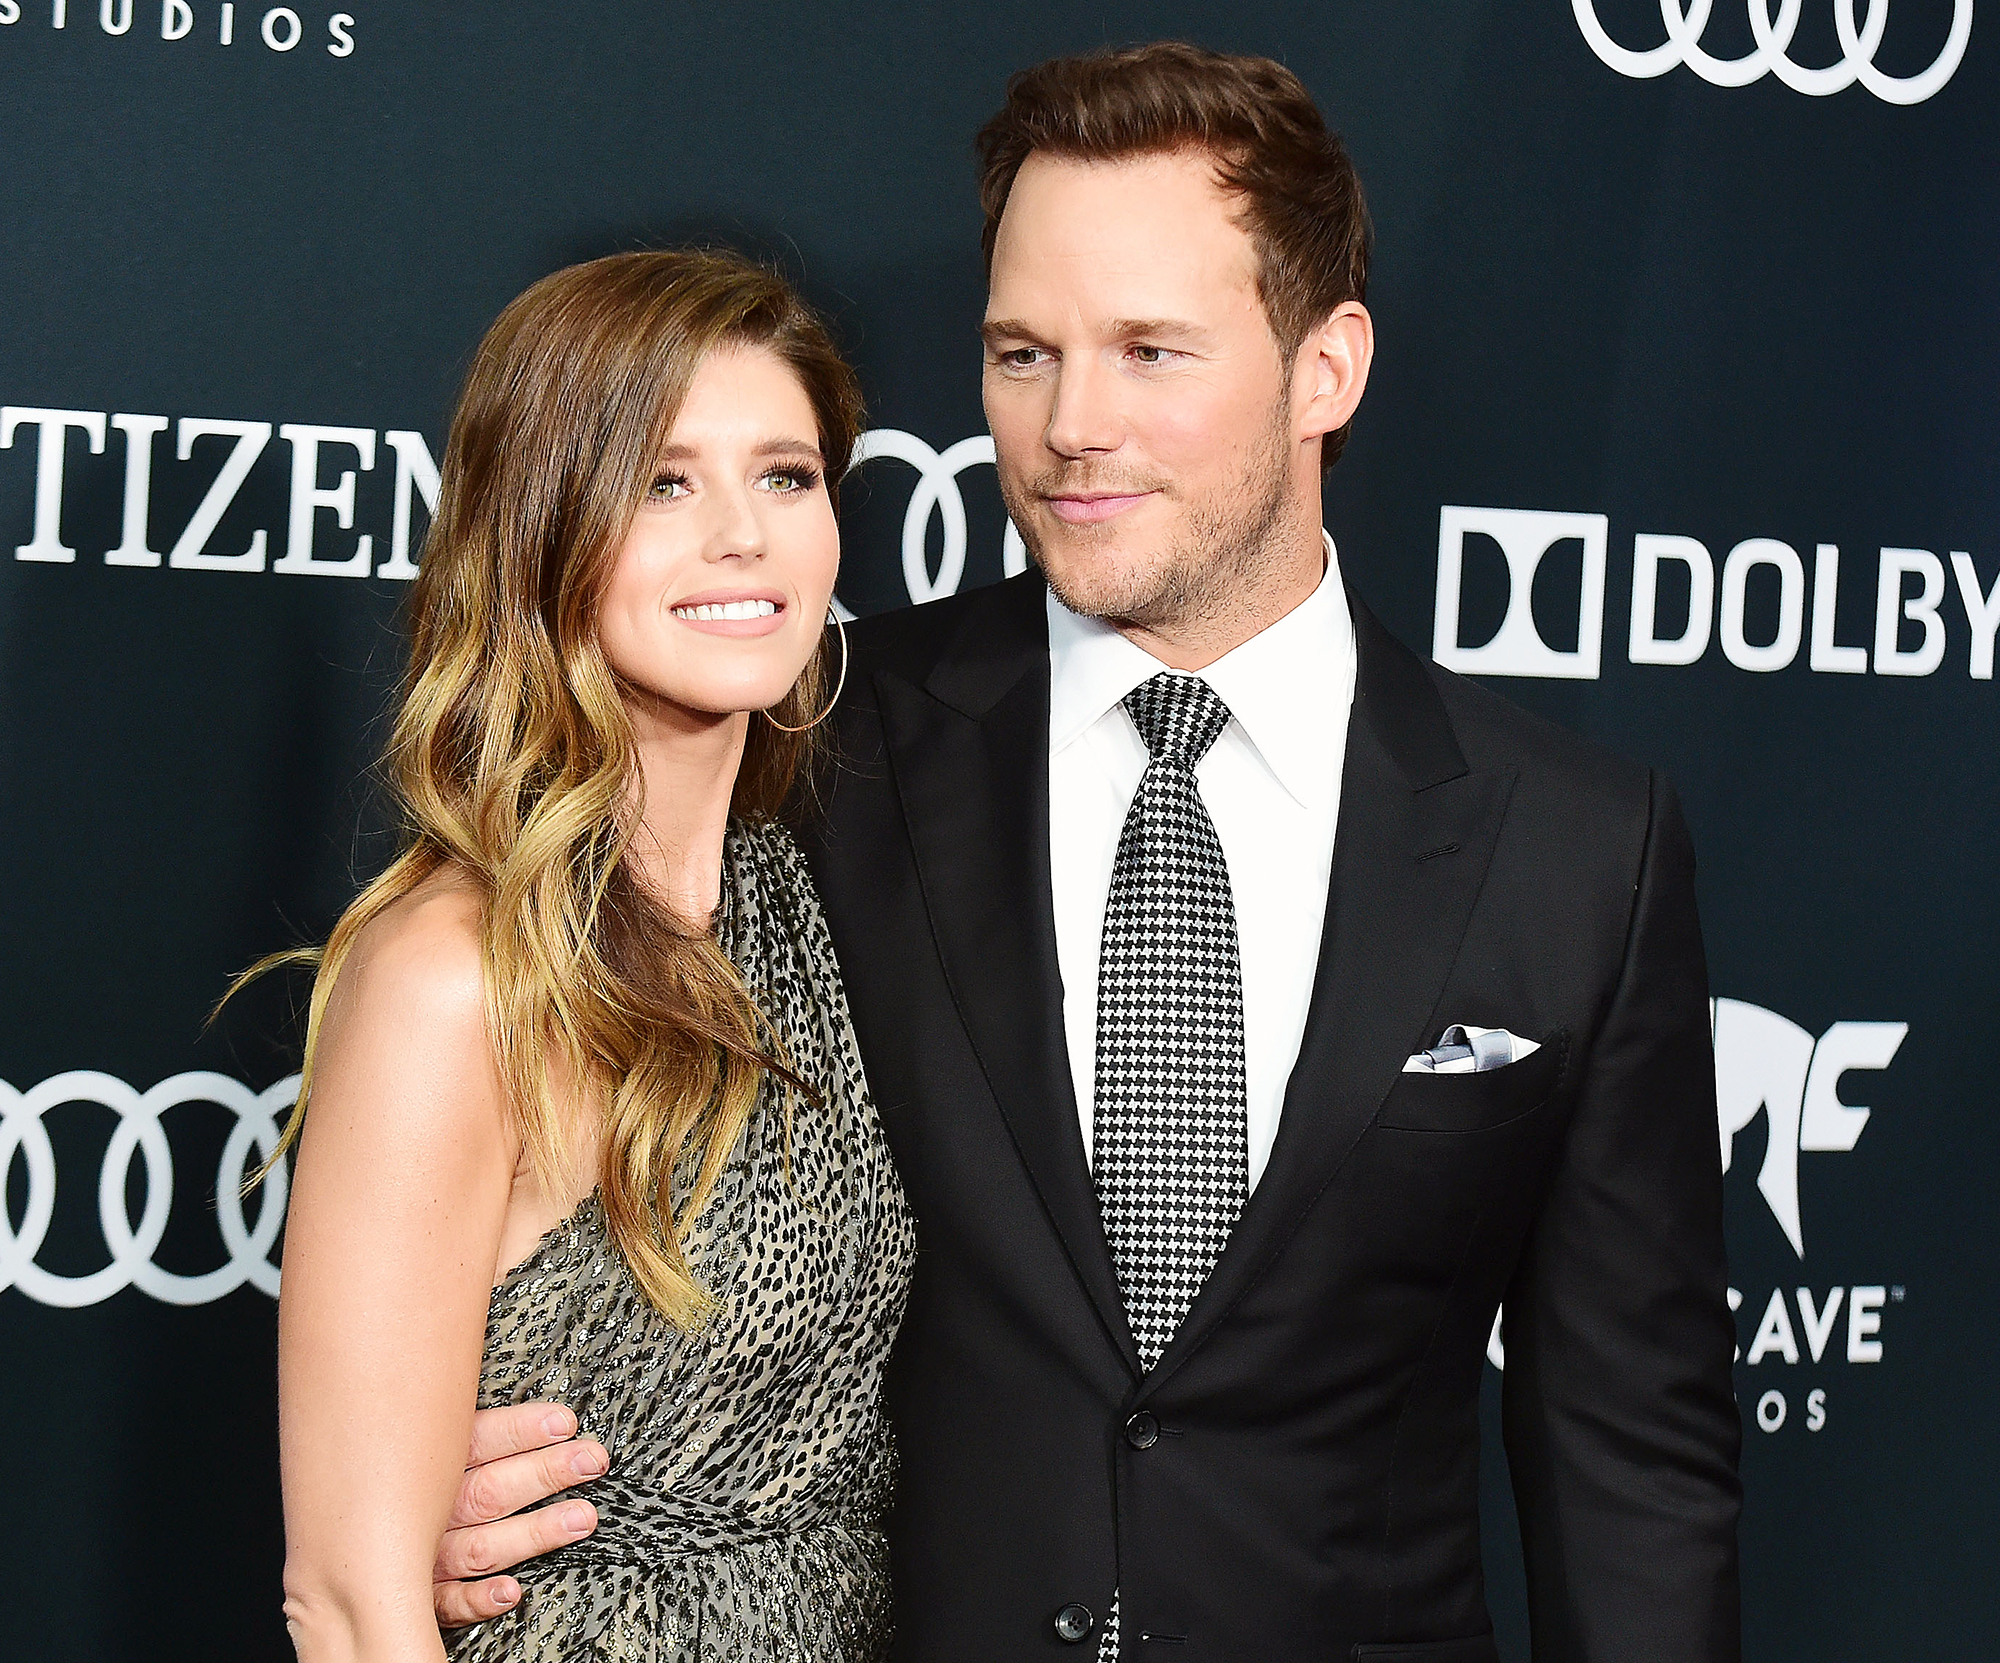 Chris Pratt Thought Katherine Schwarzenegger Laugh Was Why She Was Single When They Started Dating